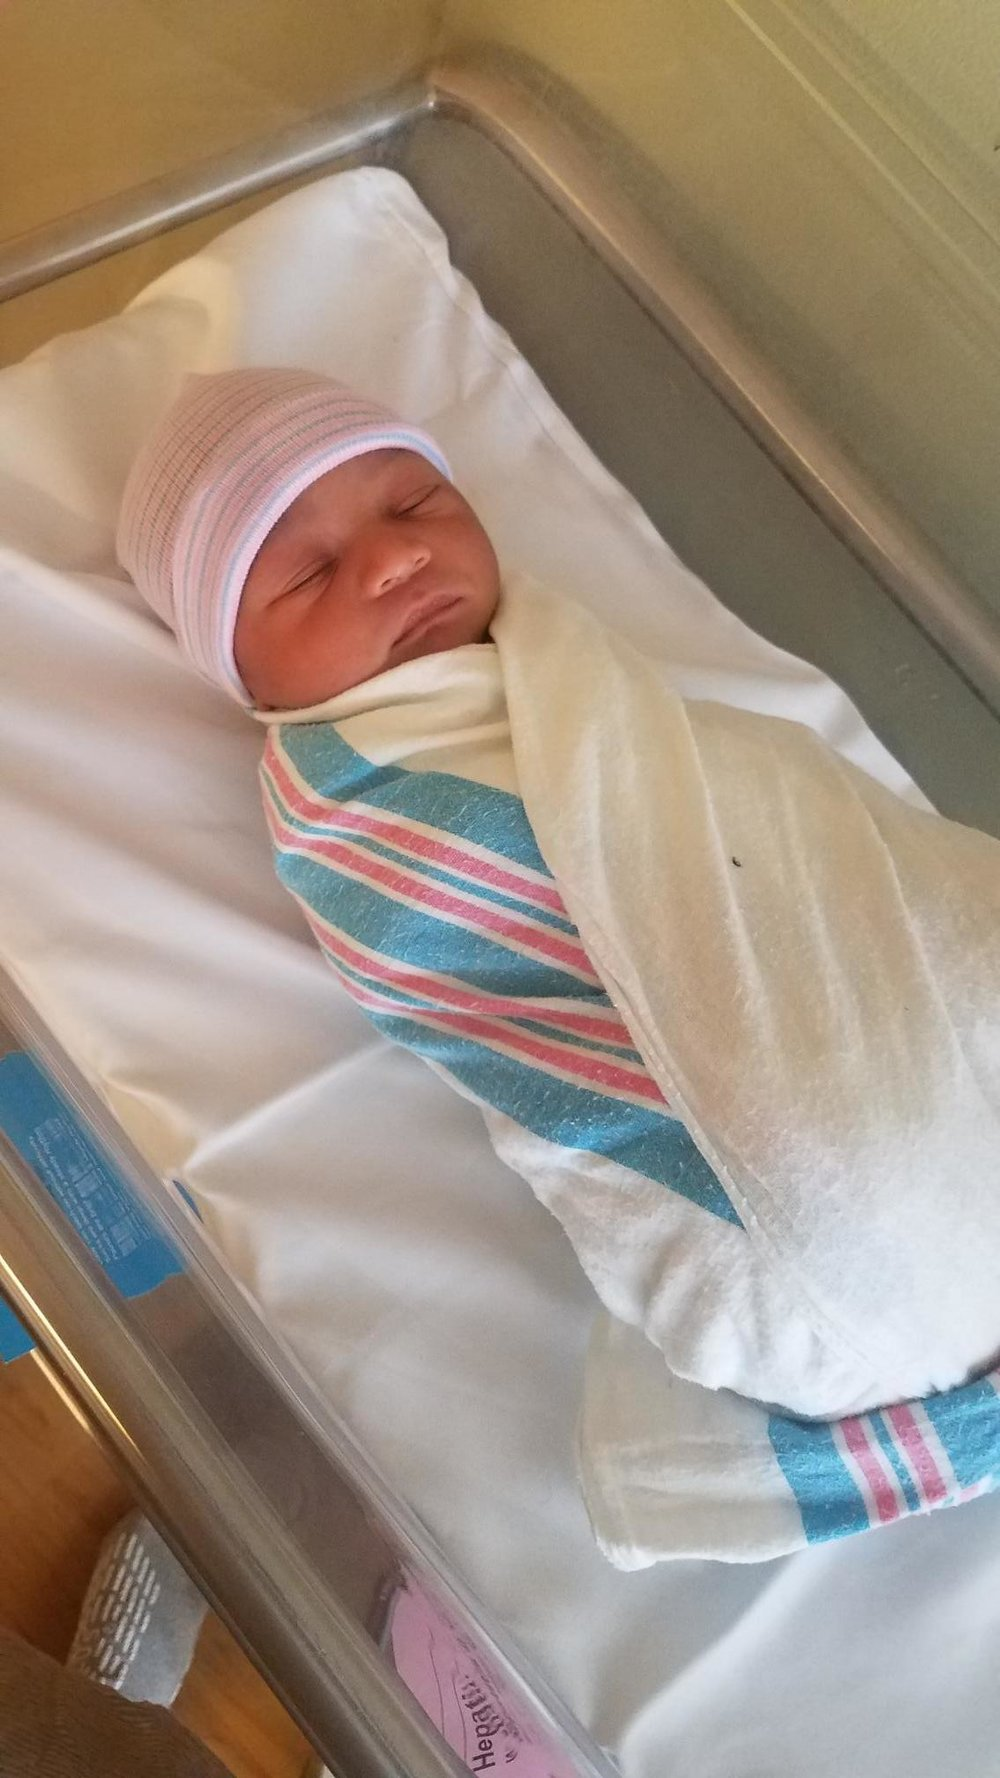 Cintia's Baby is here :)... he was born on December 1st at 7:55 pm. 7lbs 6oz... 19 3/4 inches long.  Jionni Varela Silva.